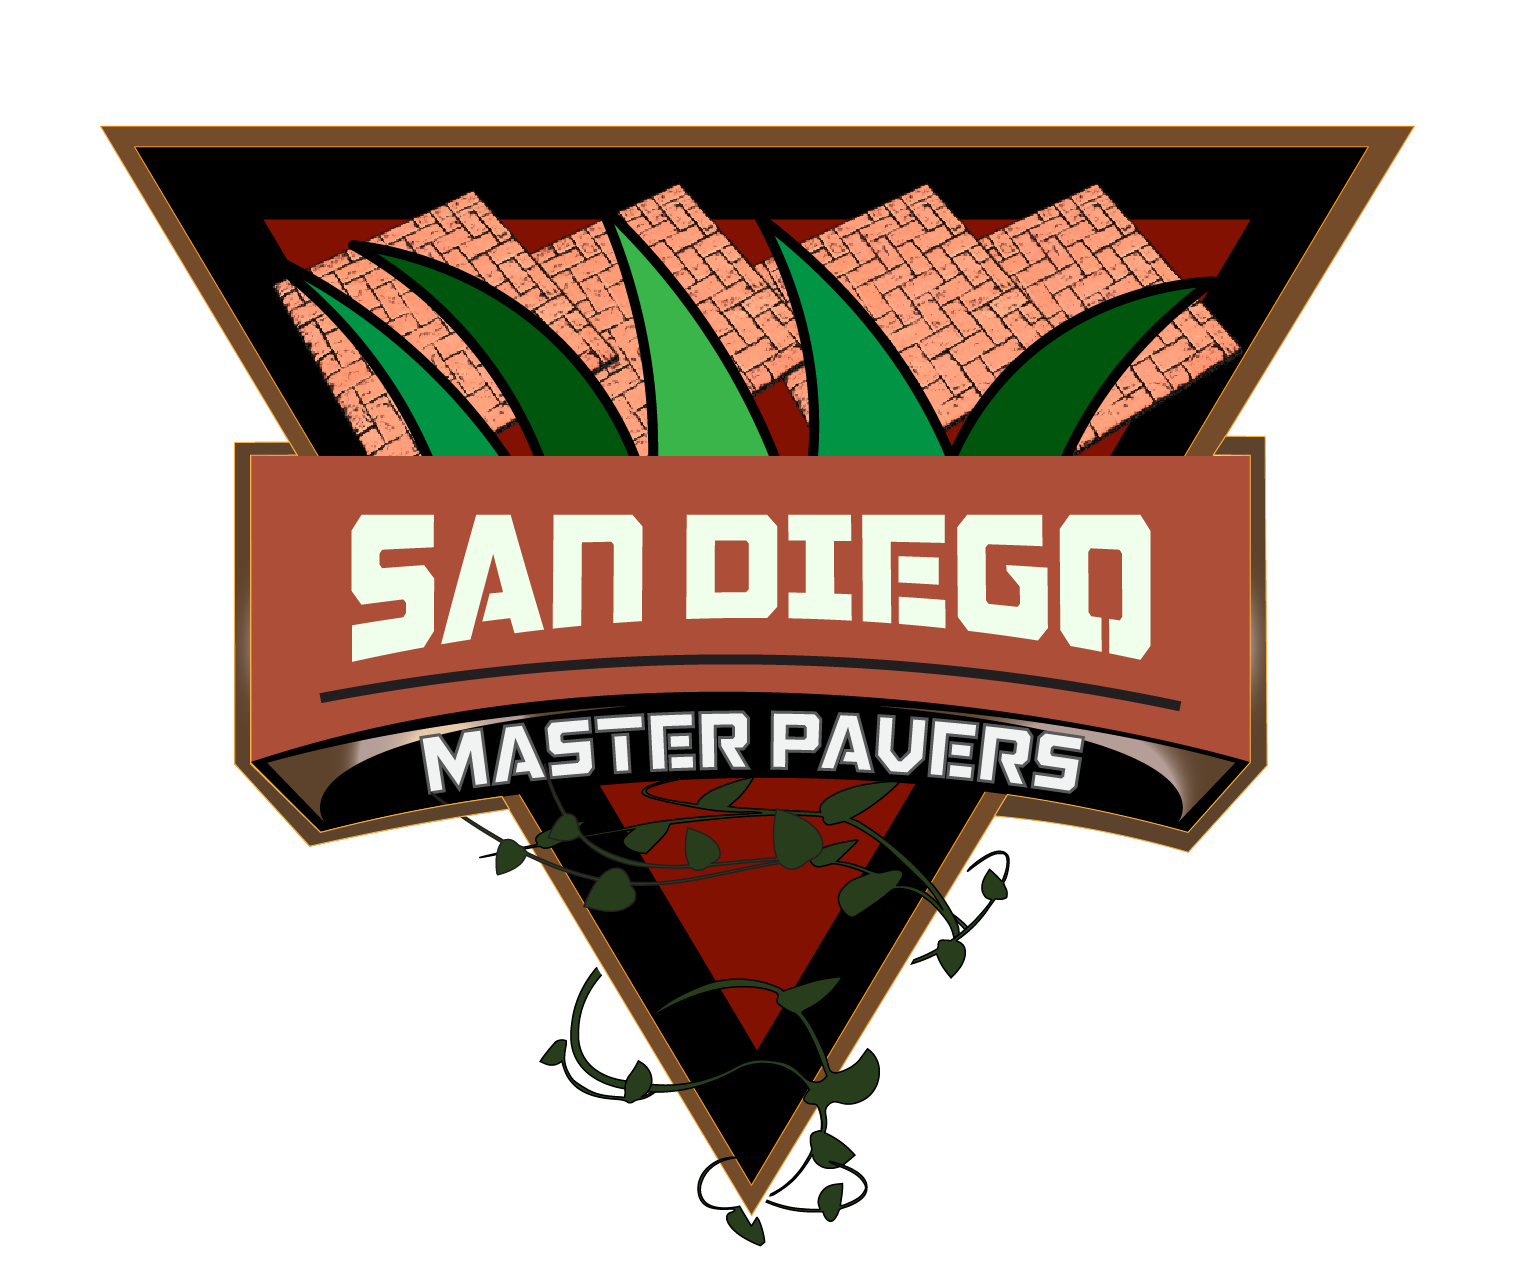 Master San Diego Pavers Offers The Best Paving Solutions For The Best Impressions